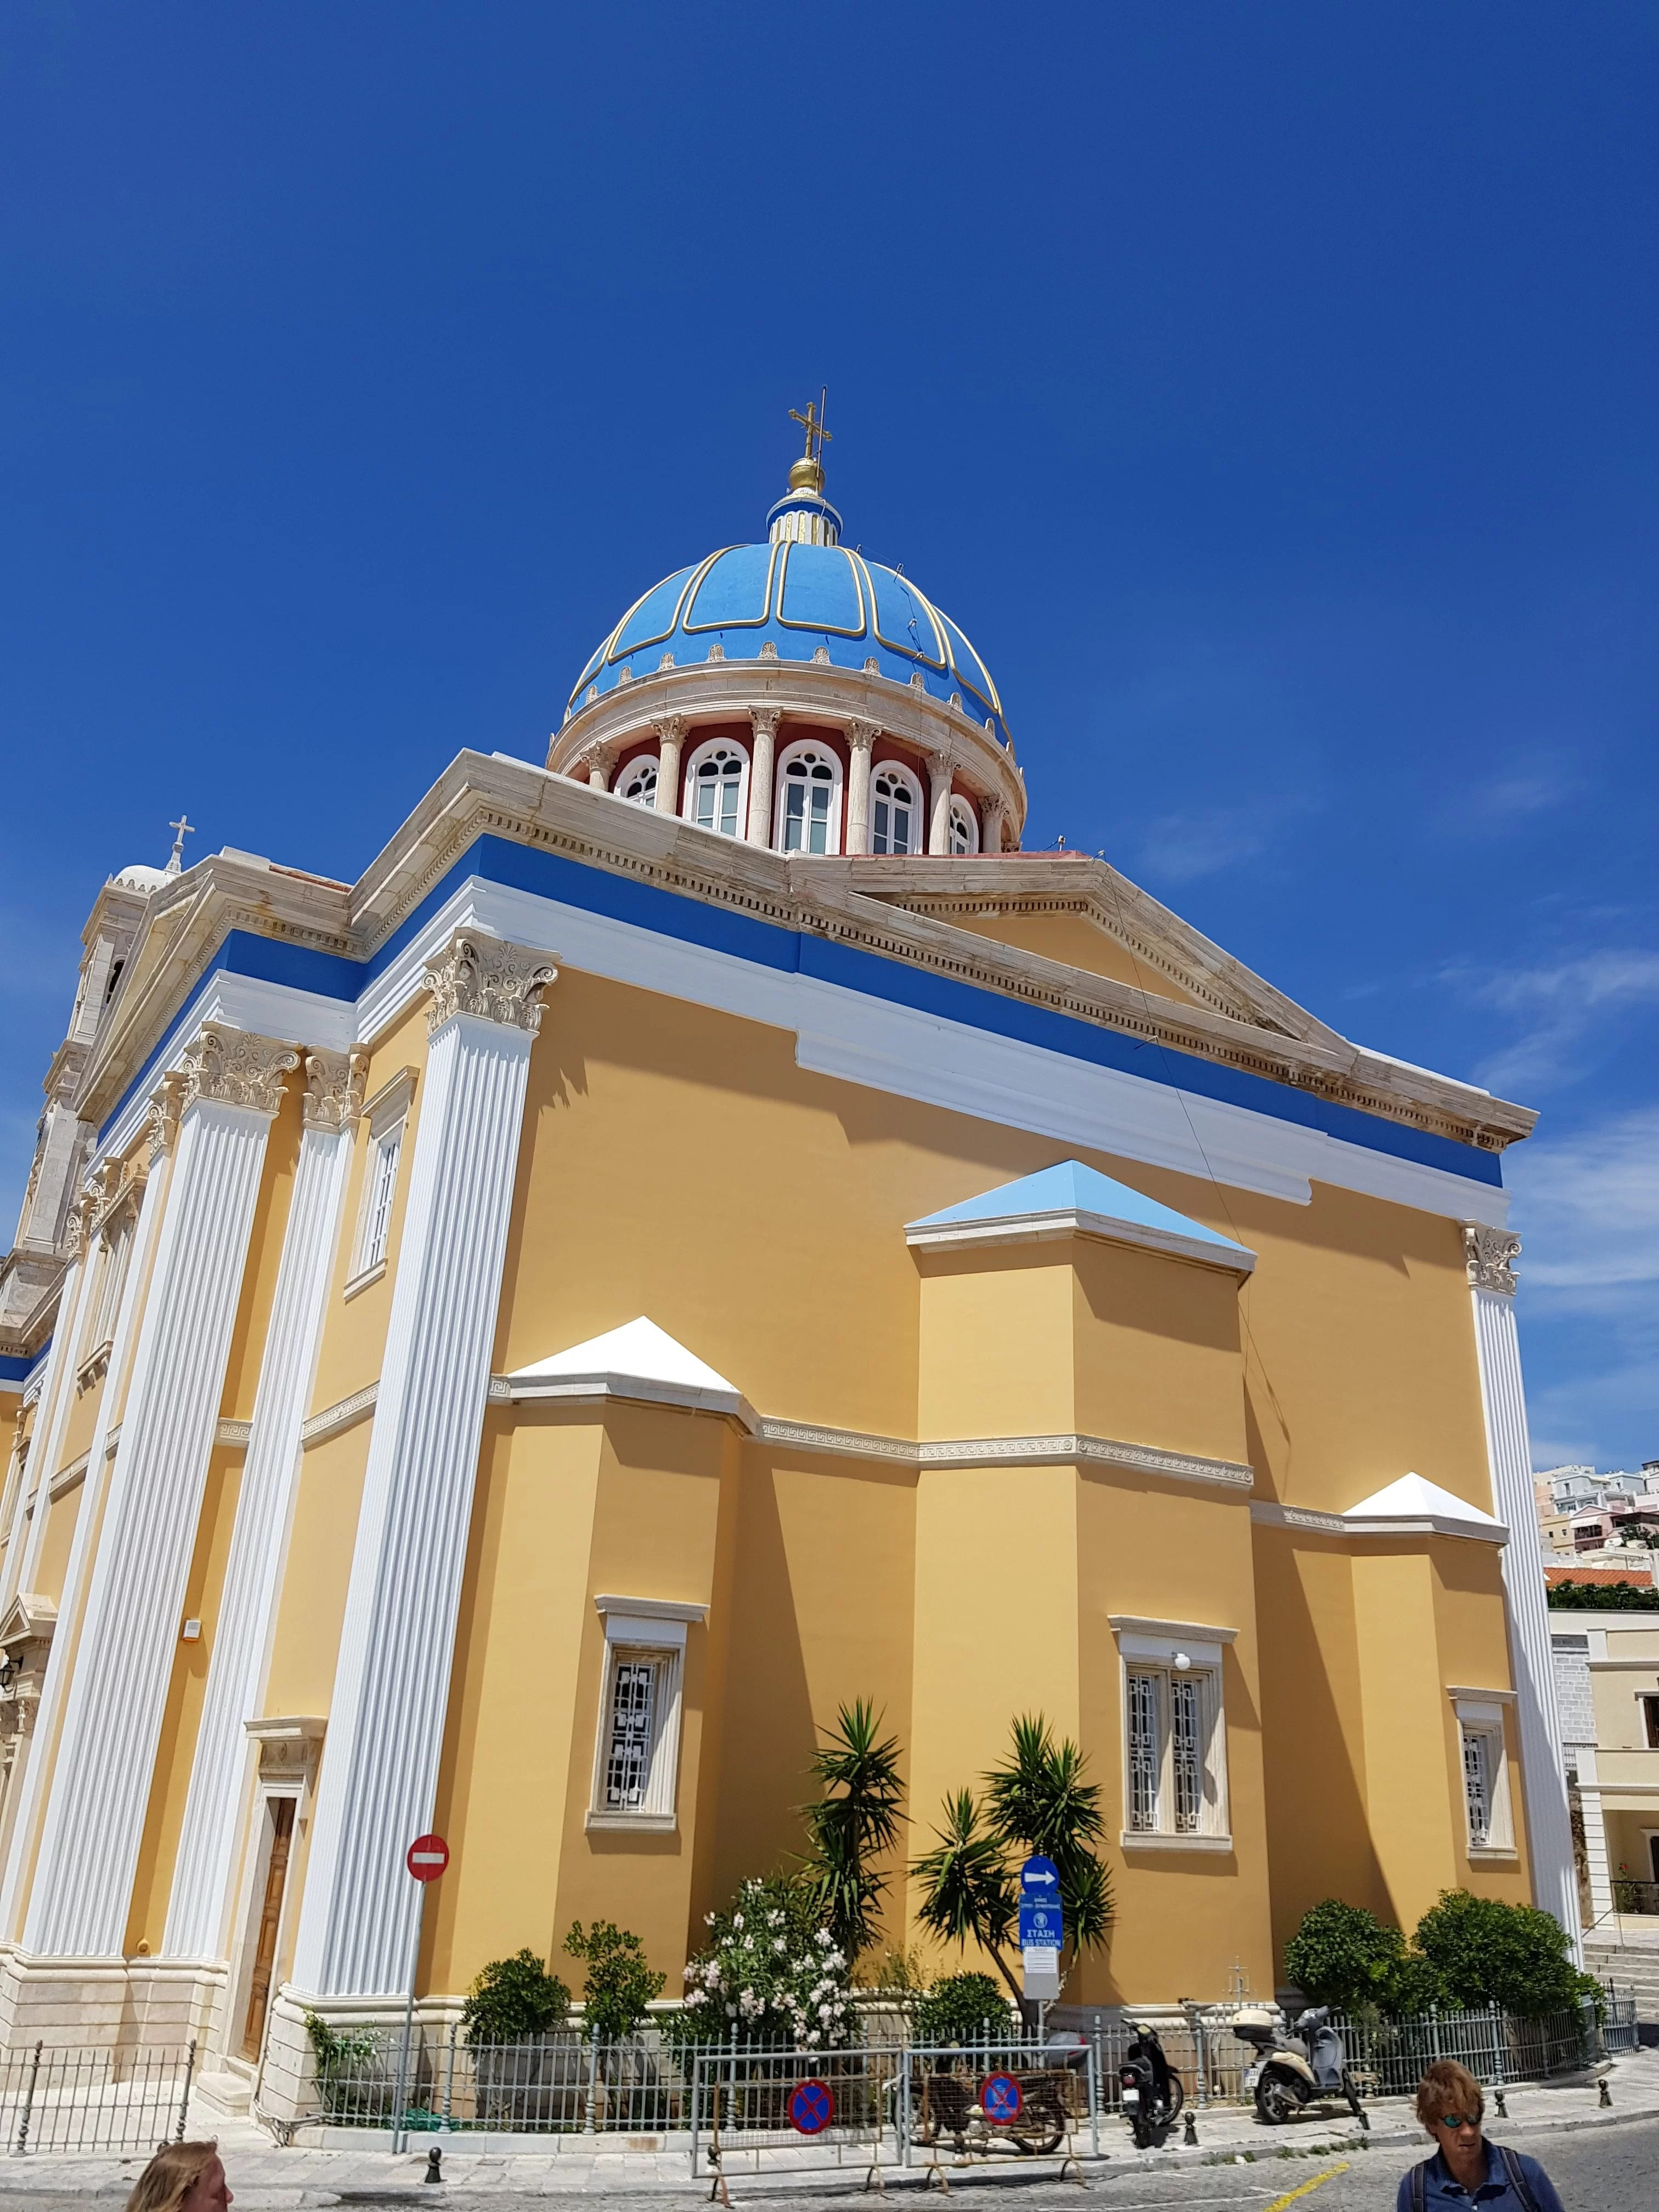 Greek Orthodox church of Saint Nicholas, Syros